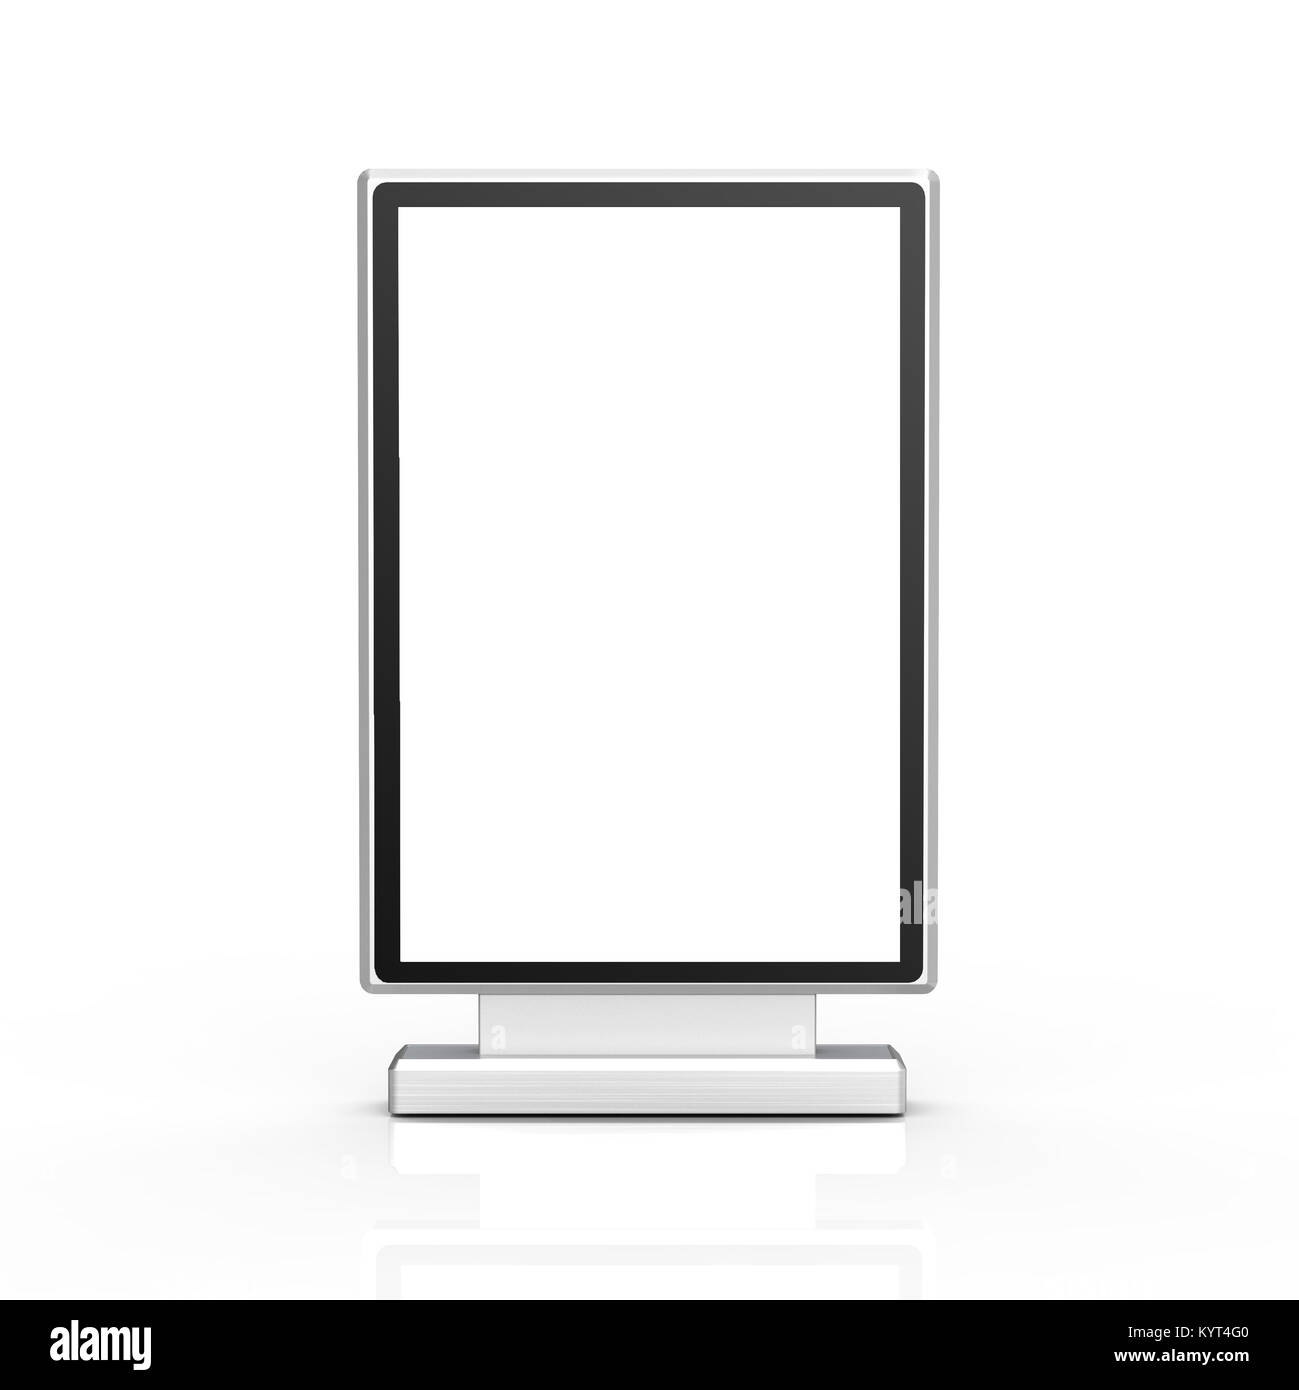 Black Light Box Stand Mockup 3d Rendering Sign Board Template For